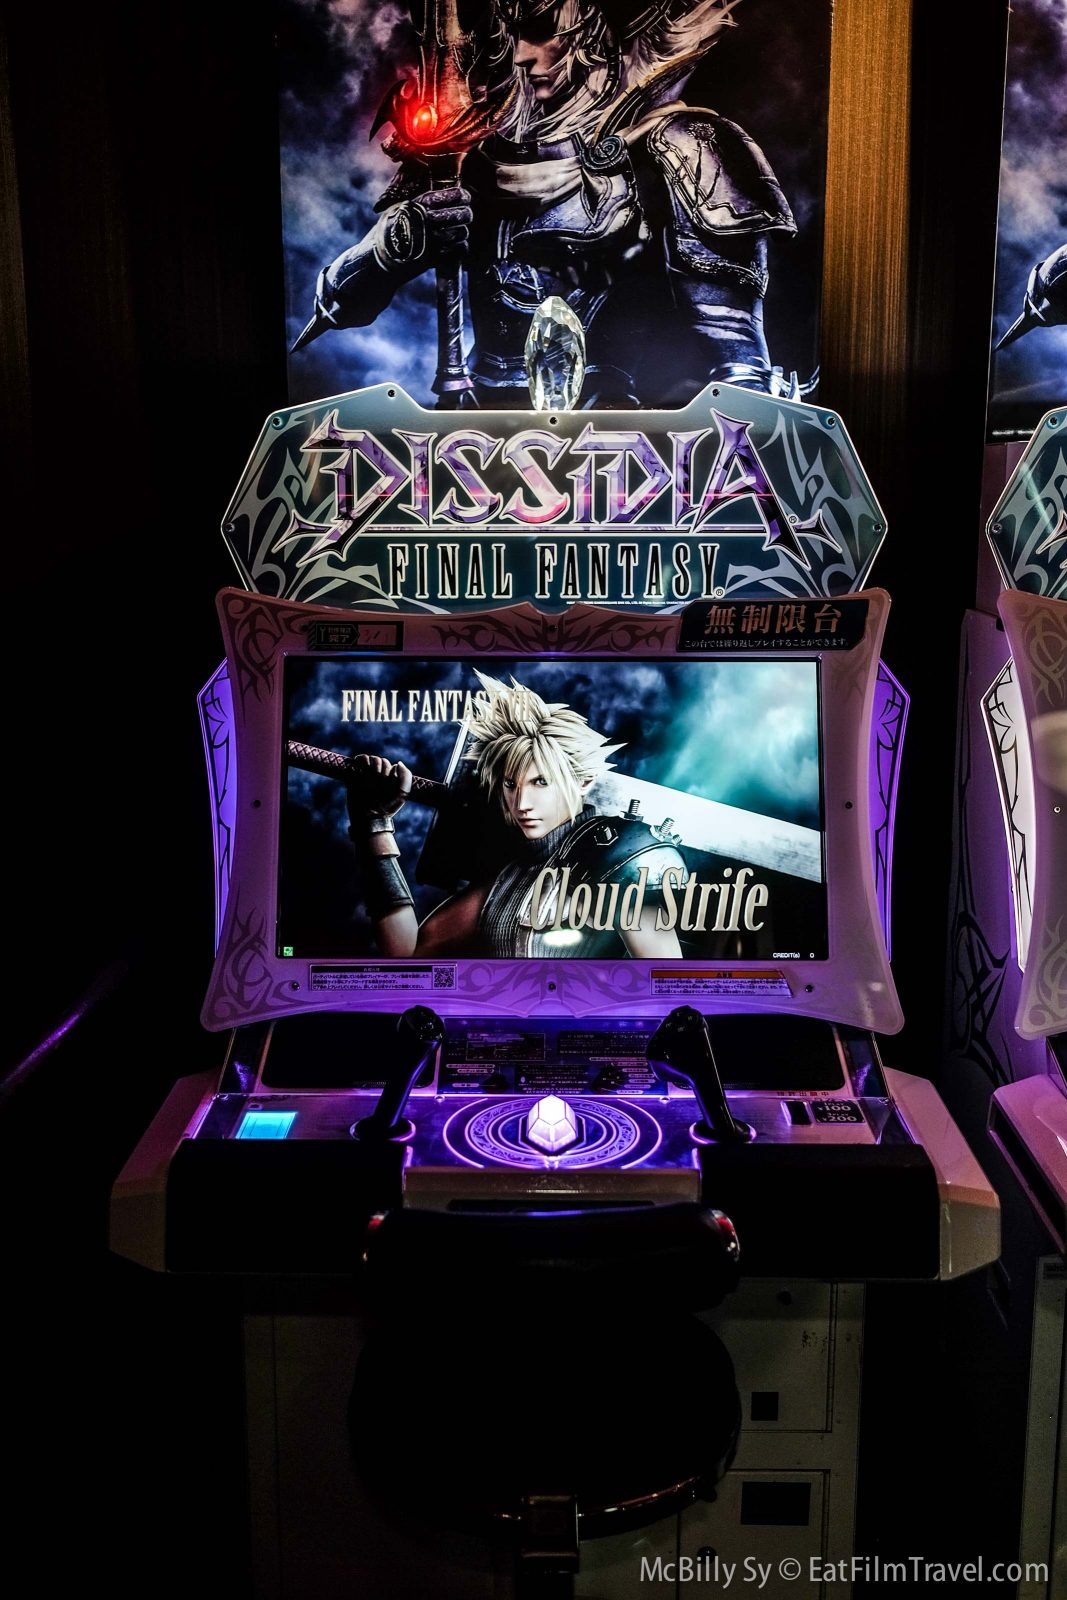 Final Fantasy arcade games